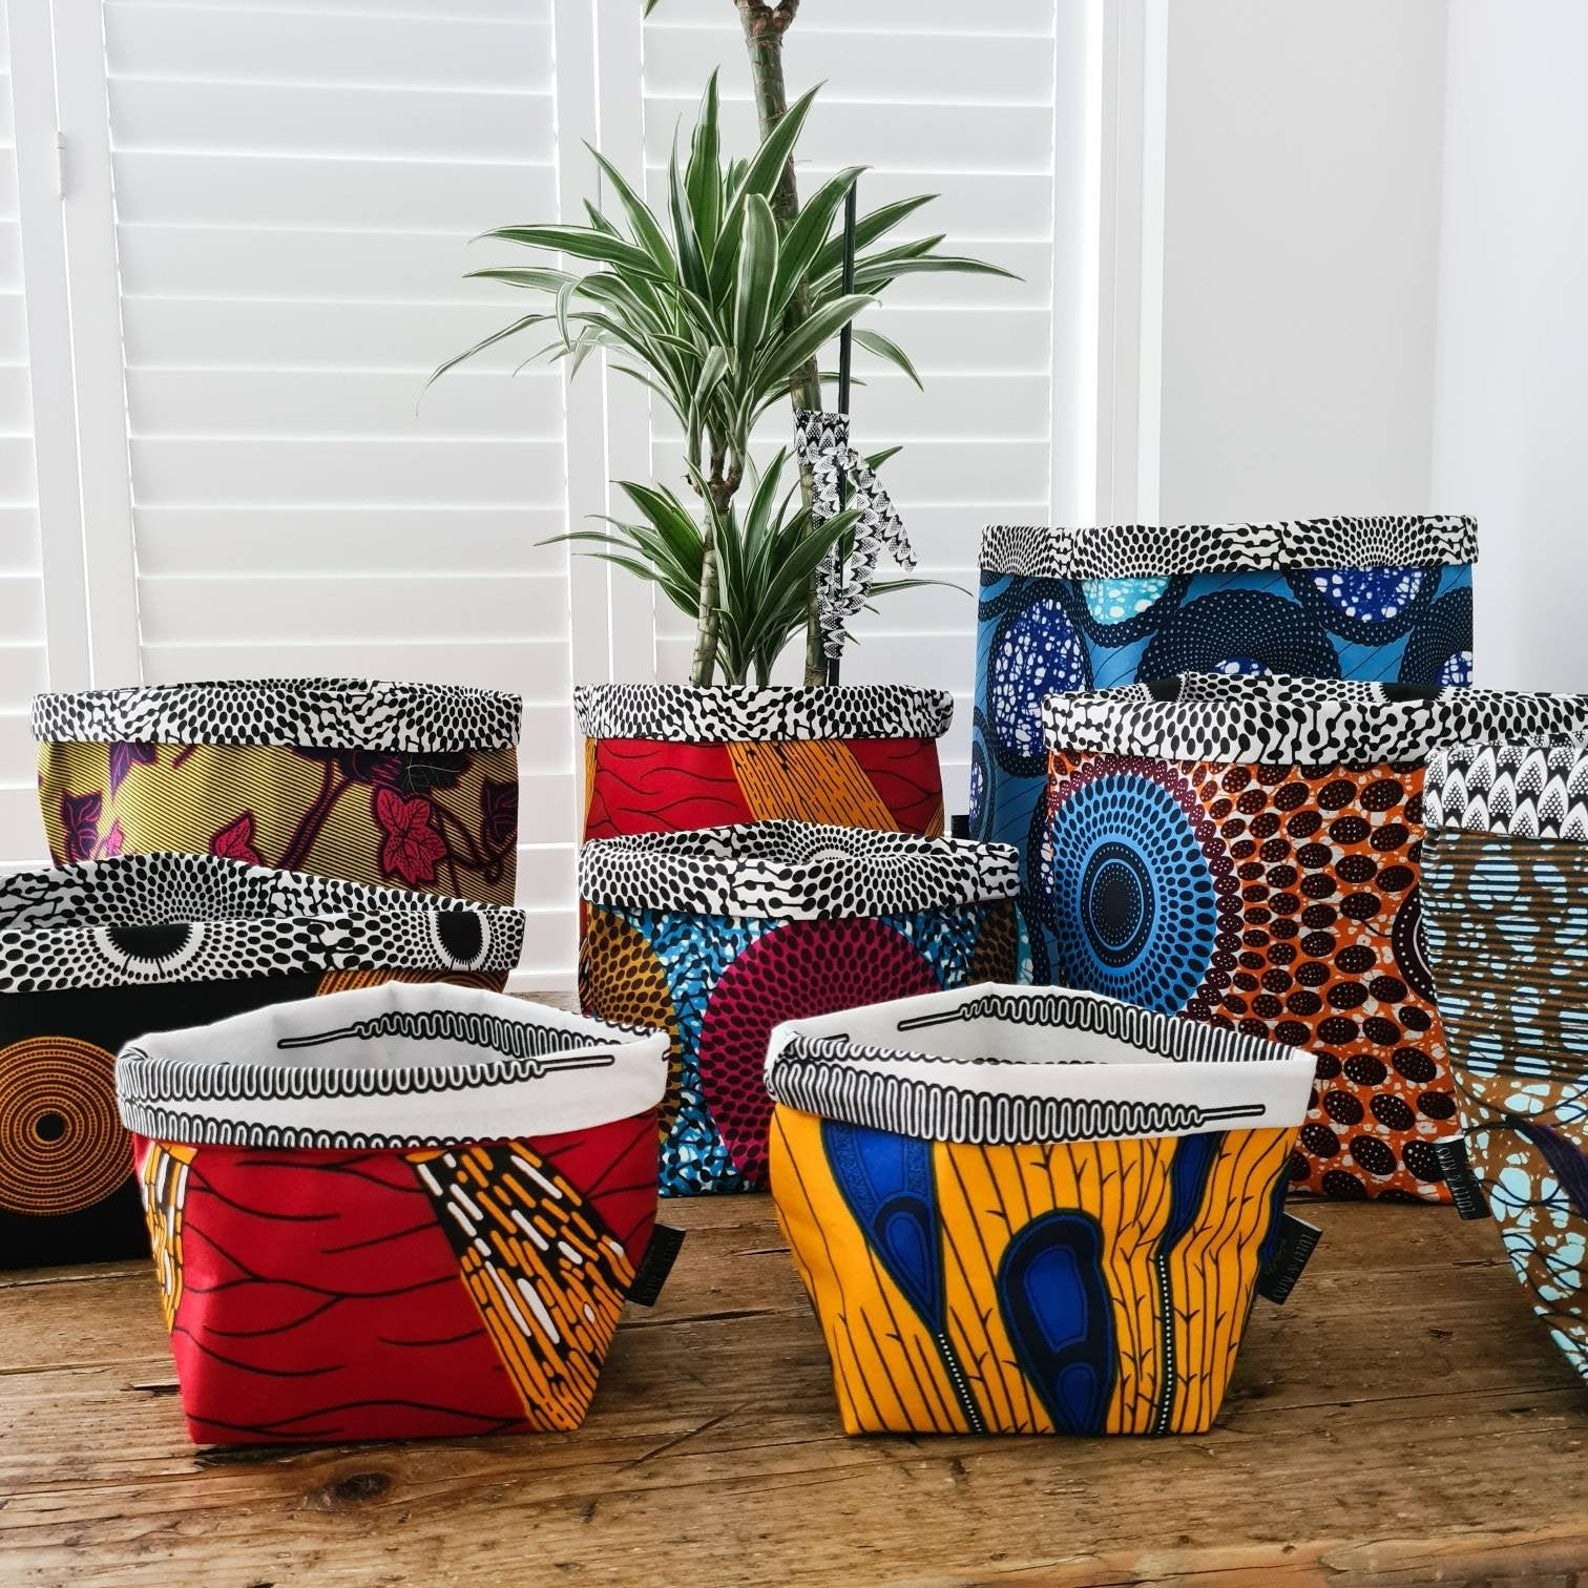 selection of fabric baskets in brightly colored patterns with folded over tops